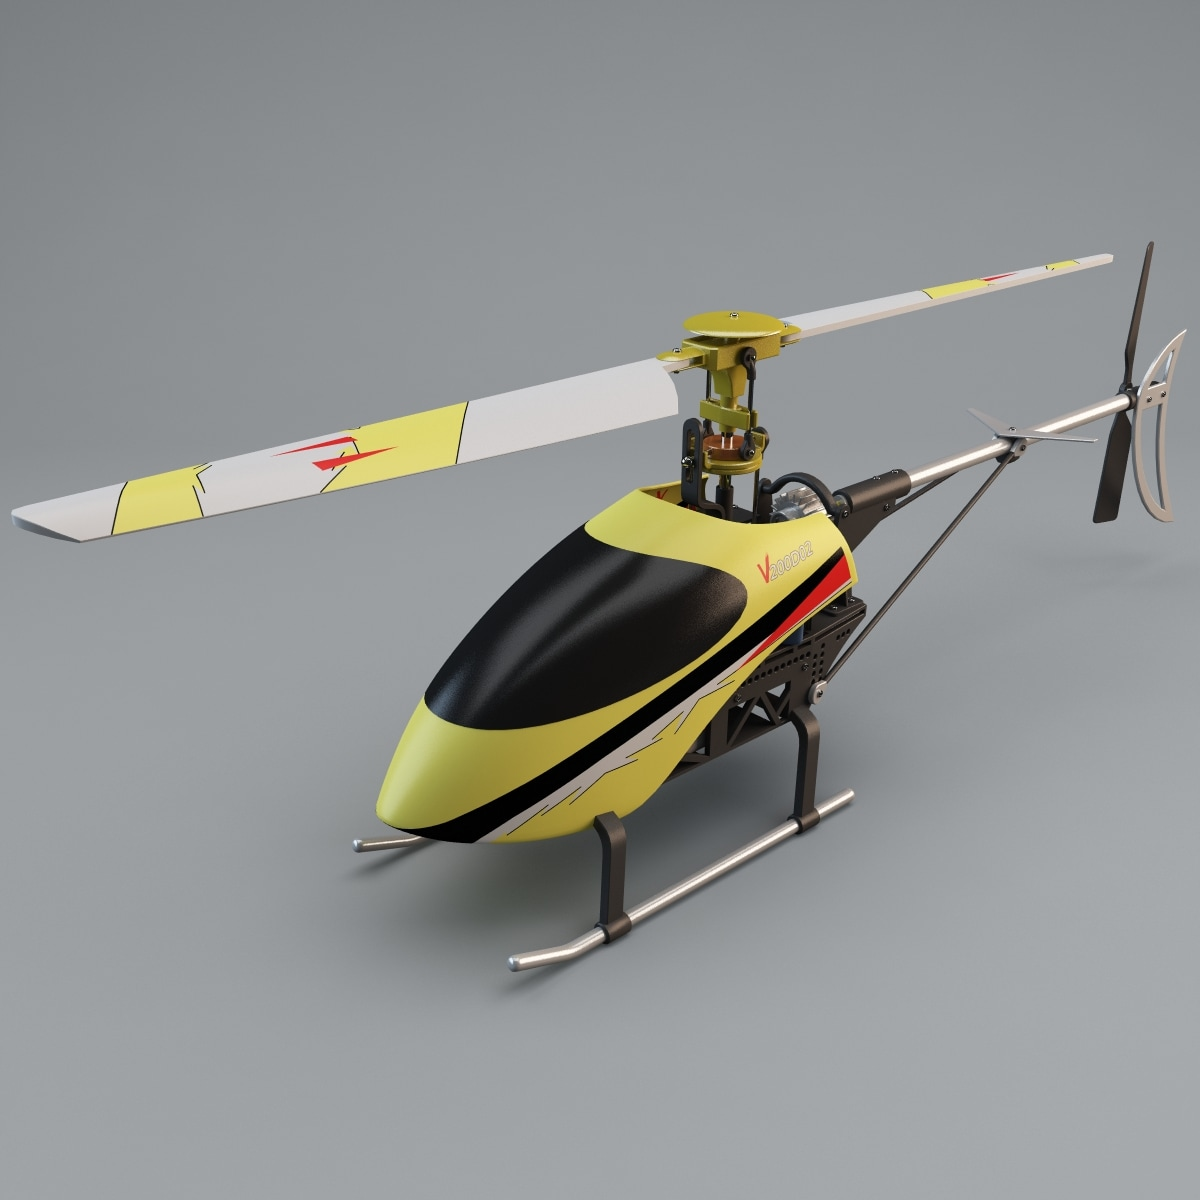 Mini_Helicopter_Walkera_002.jpg